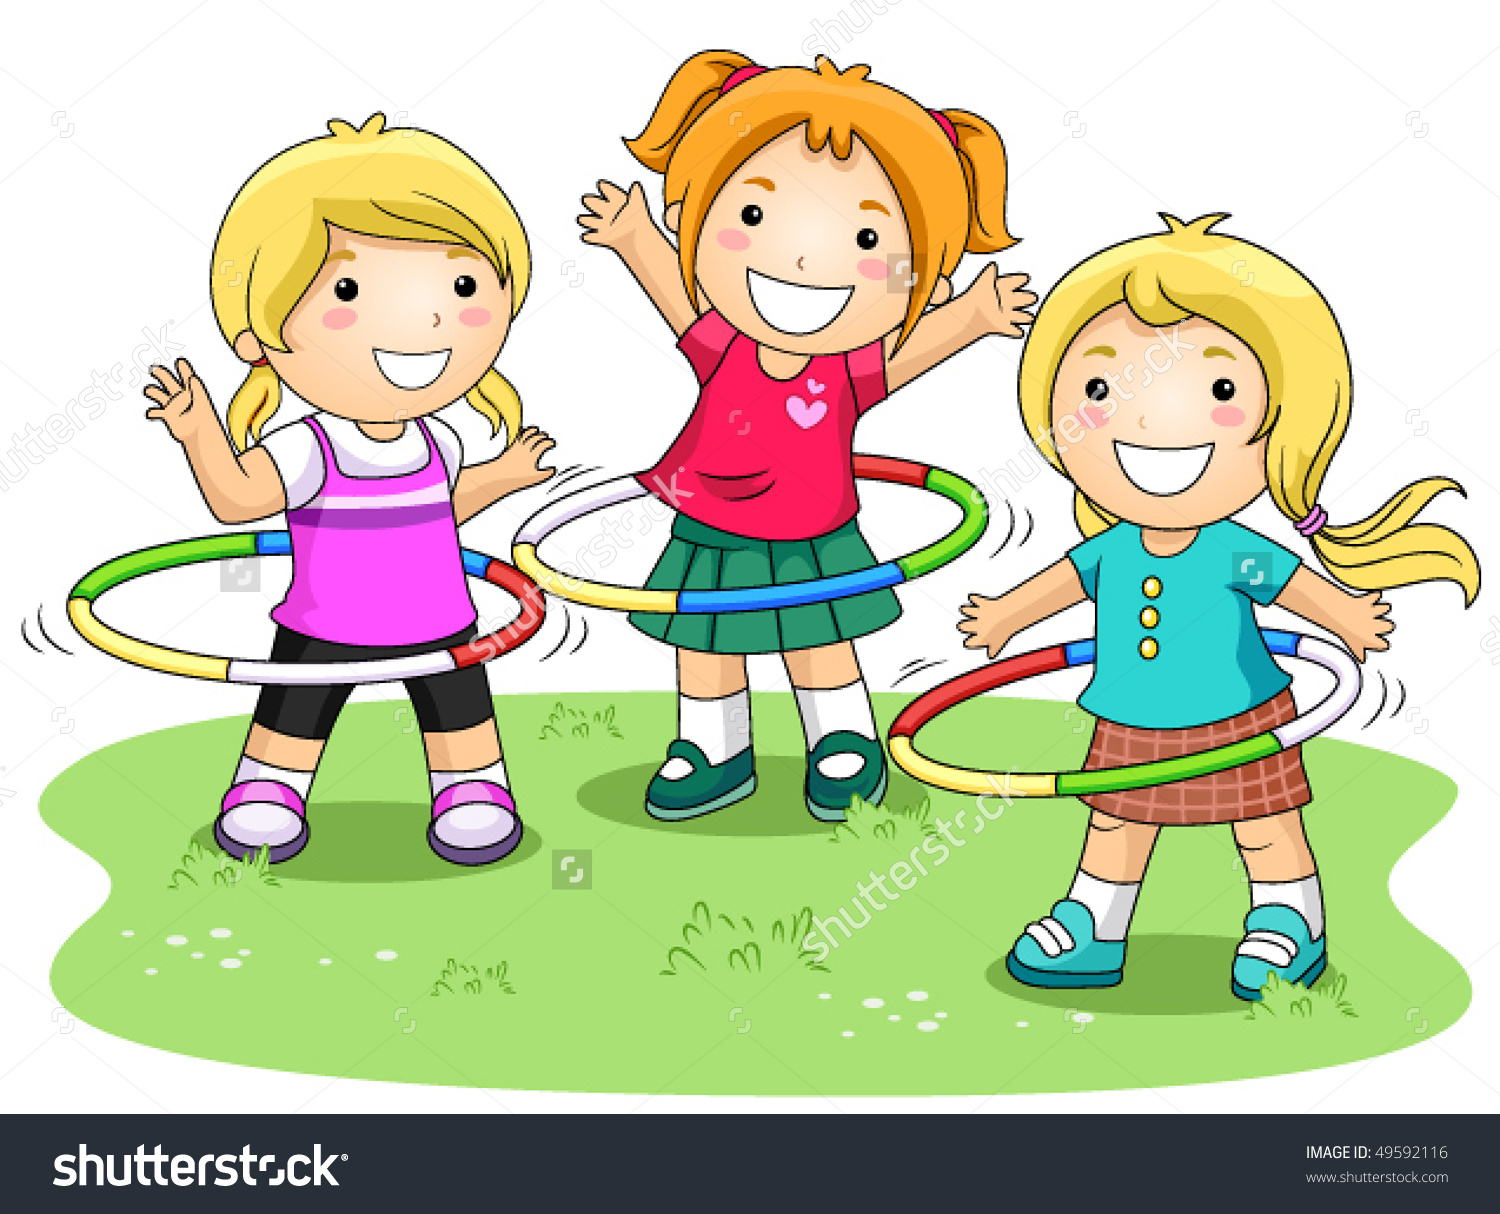 children playing clipart clipground clip art children playing bells clip art children playing sports